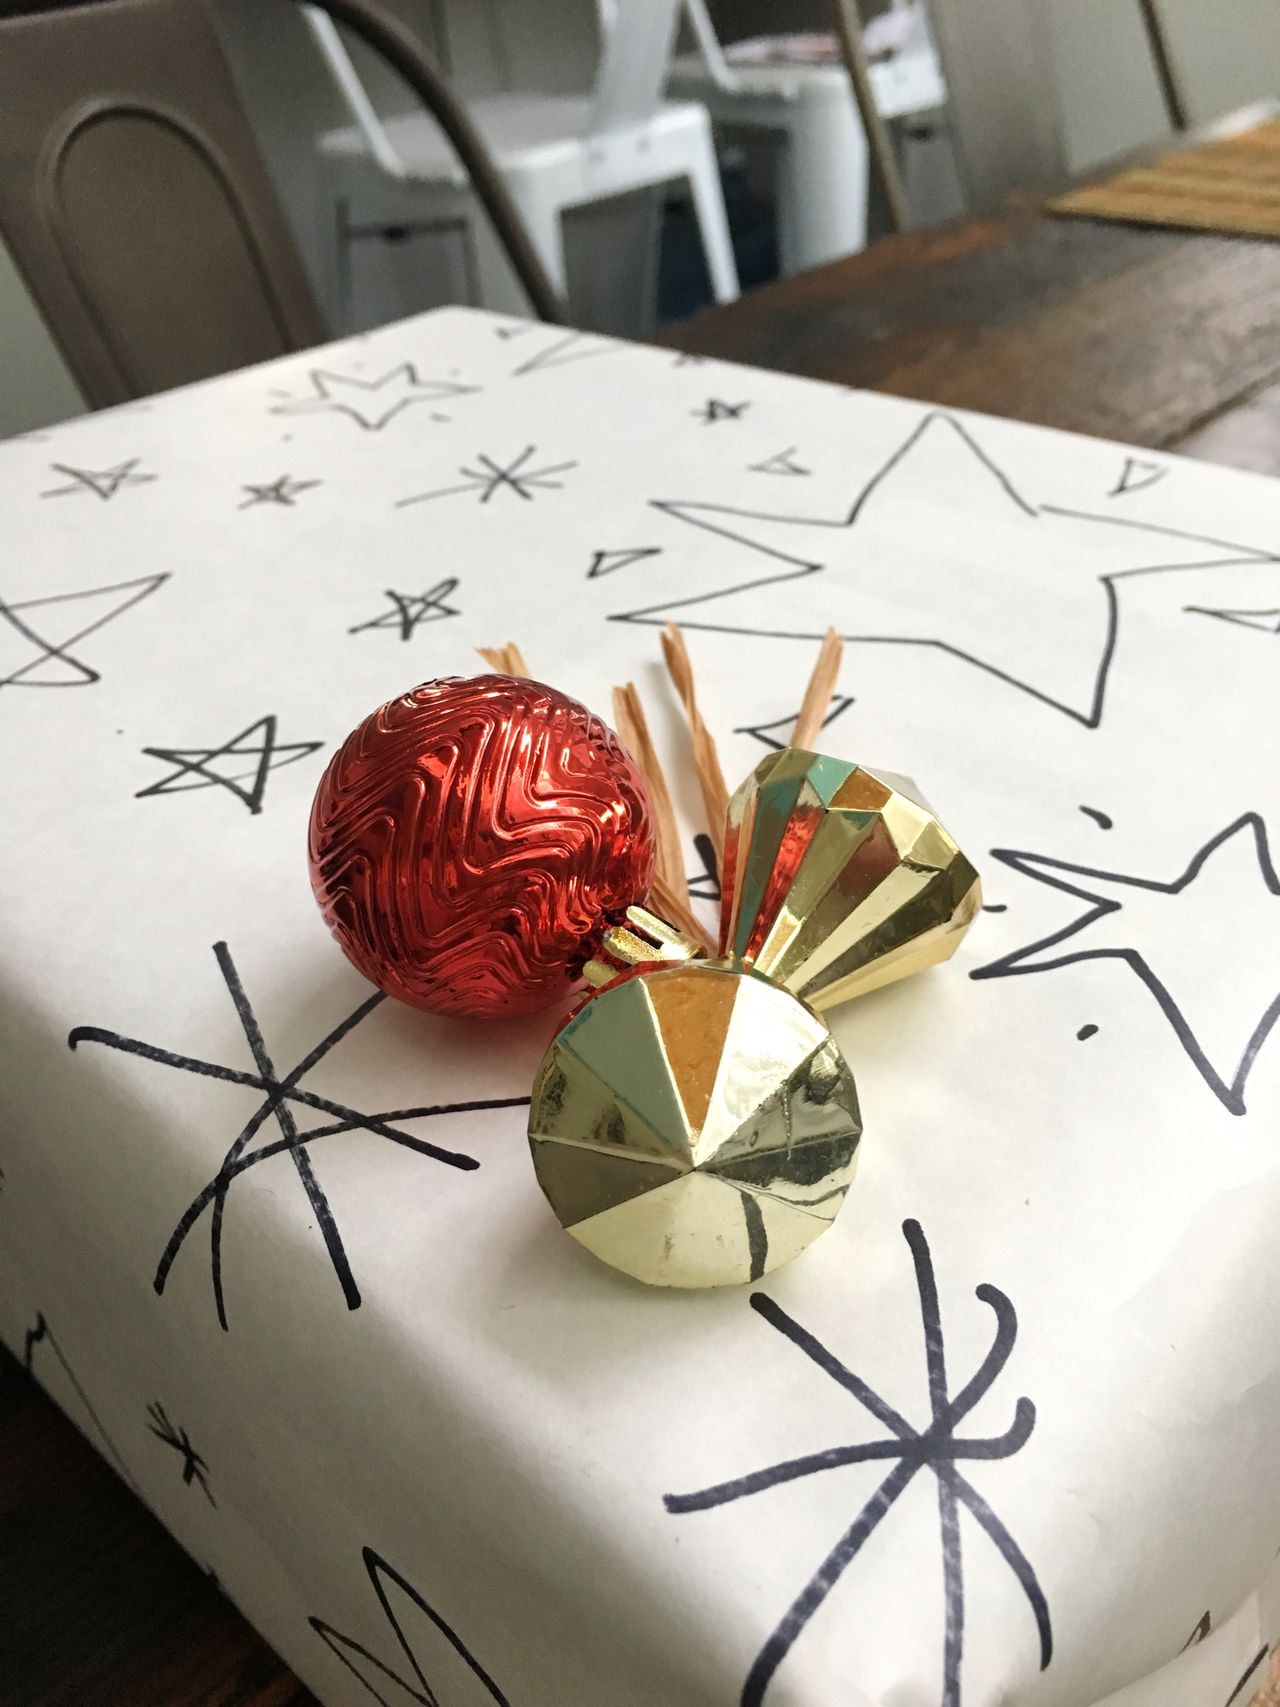 Gift Wrapping Gift Wrapped Present Wrapped Gift Wrapping Paper Holiday Celebration Gift Indoors  Paper Table High Angle View No People Close-up Day